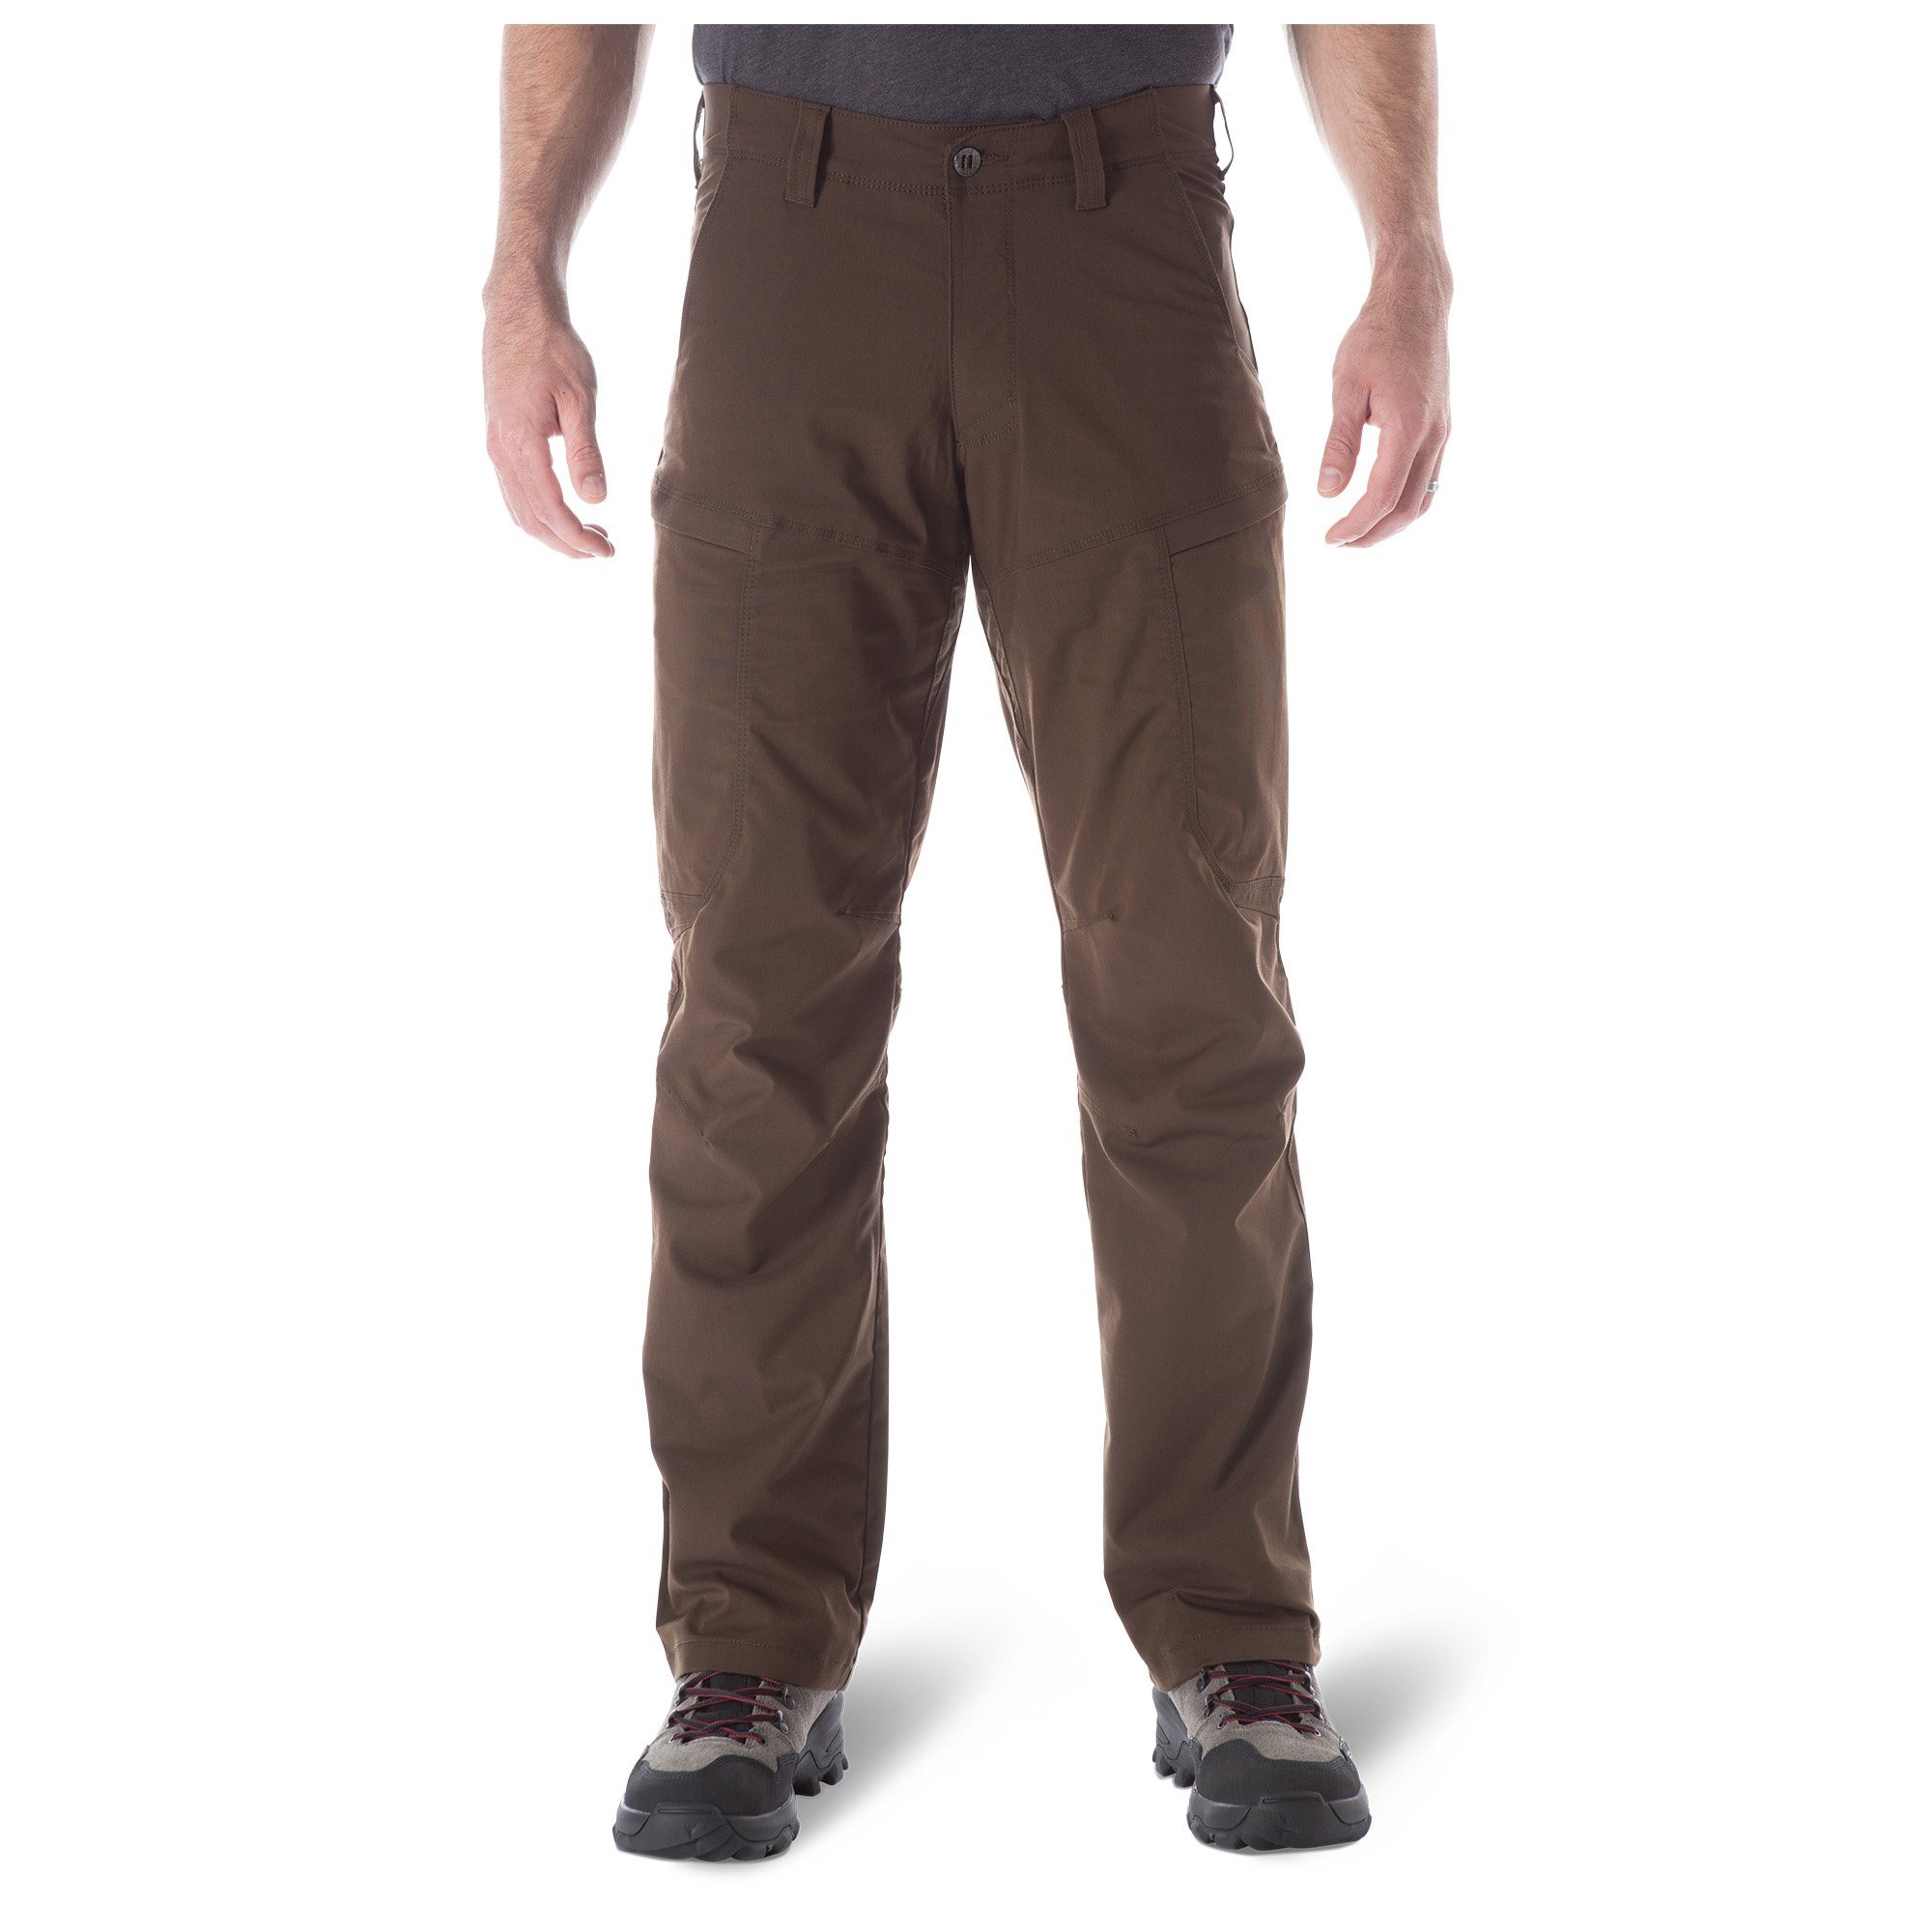 5.11 Tactical Men's Apex Cargo Pant, Water Repellant, Flex-Tac Mechanical Stretch, Burnt, 34Wx32L, Style 74434 by 5.11